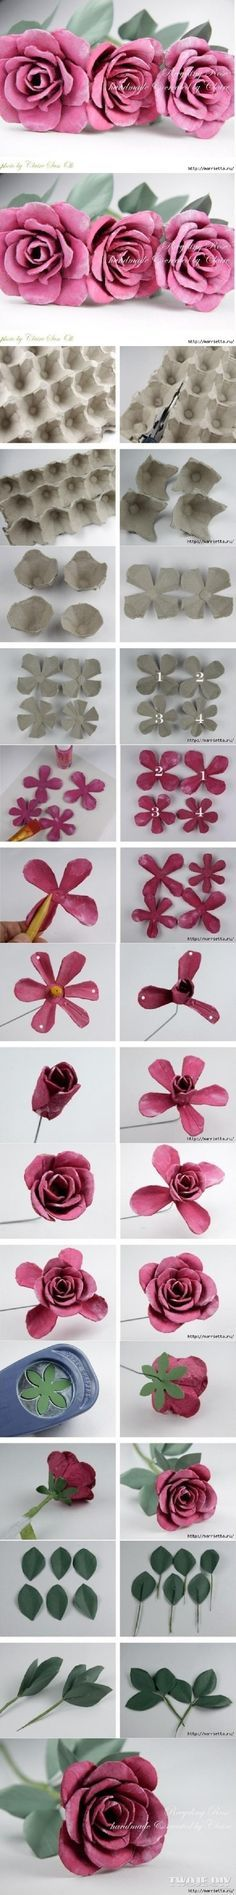 DIY upcycle egg box roses pink roses diy easy crafts diy ideas diy crafts do it yourself easy diy diy flowers craft flowers diy decor craft decor diy craft ideas diy tutorials Craft and DIY Projects and Tutorials Handmade Flowers, Diy Flowers, Fabric Flowers, Paper Flowers, Rose Flowers, Pink Roses, Roses Roses, Flower Diy, Flower Crown